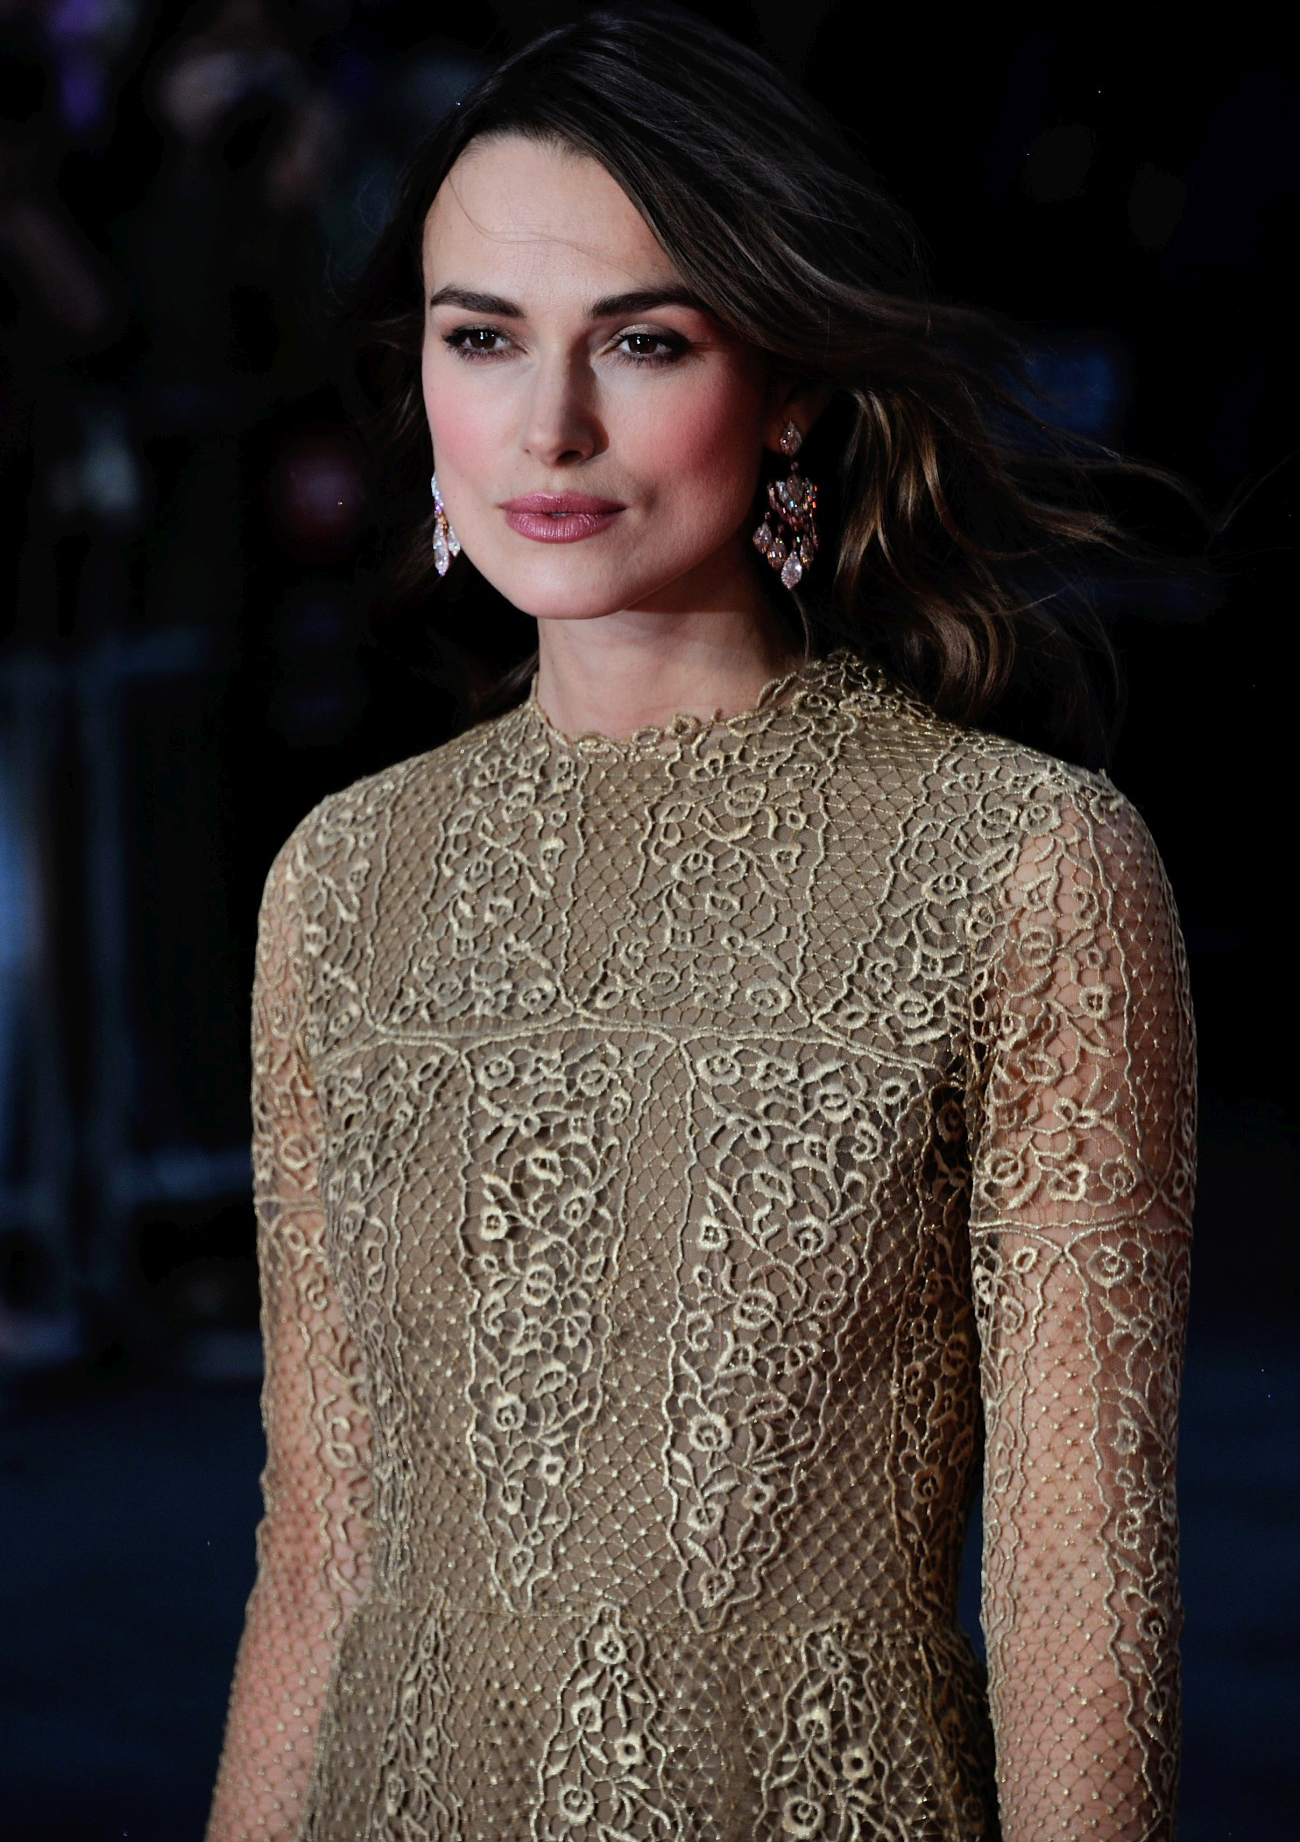 Keira Knightley. She's got the look.